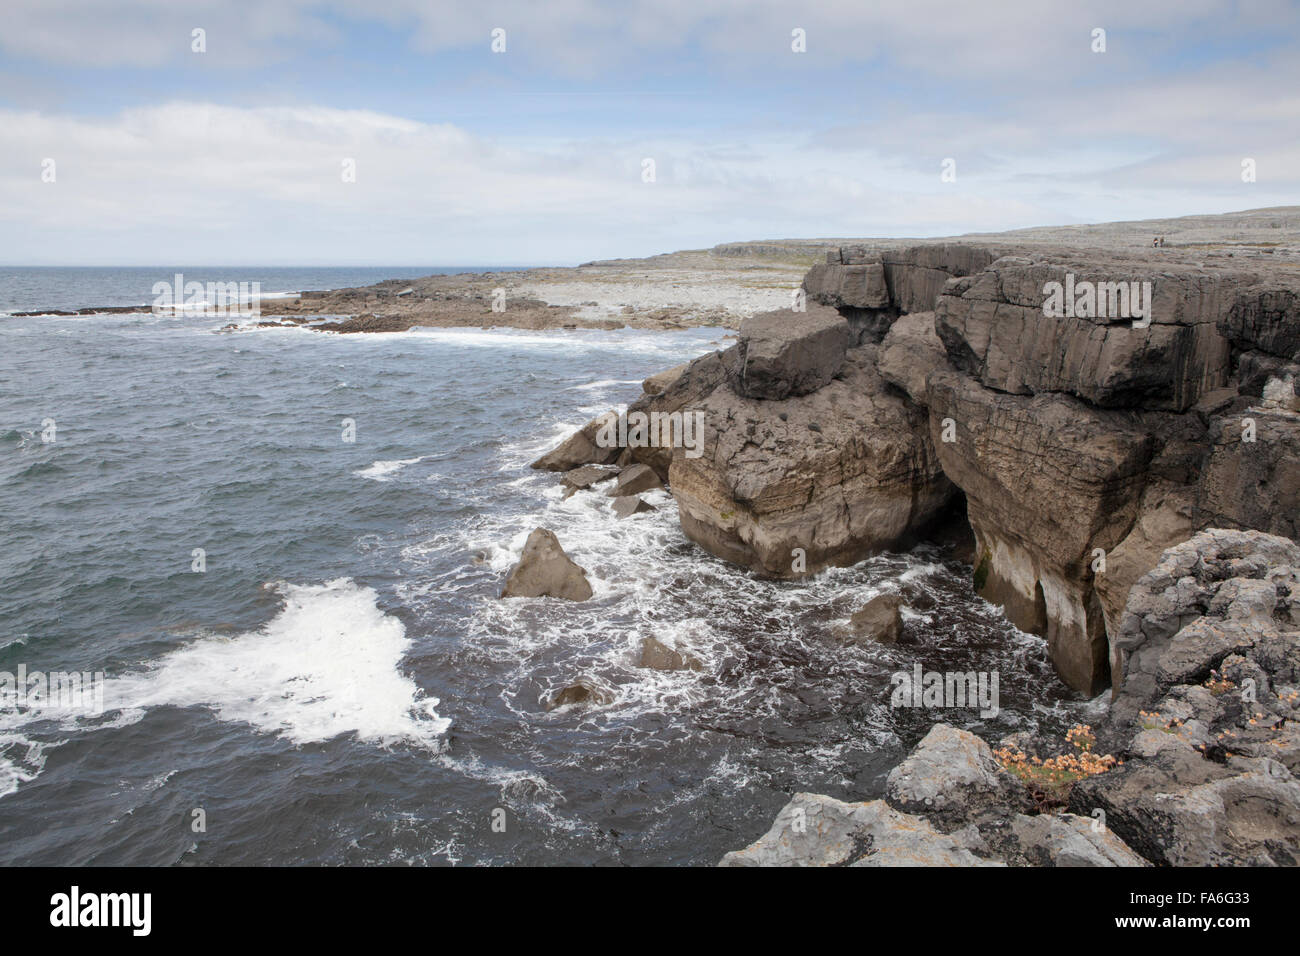 Tourists on the clifftops on the west coast of Ireland at Poulsallagh - part of the Wild Atlantic Way coastal route - Stock Image